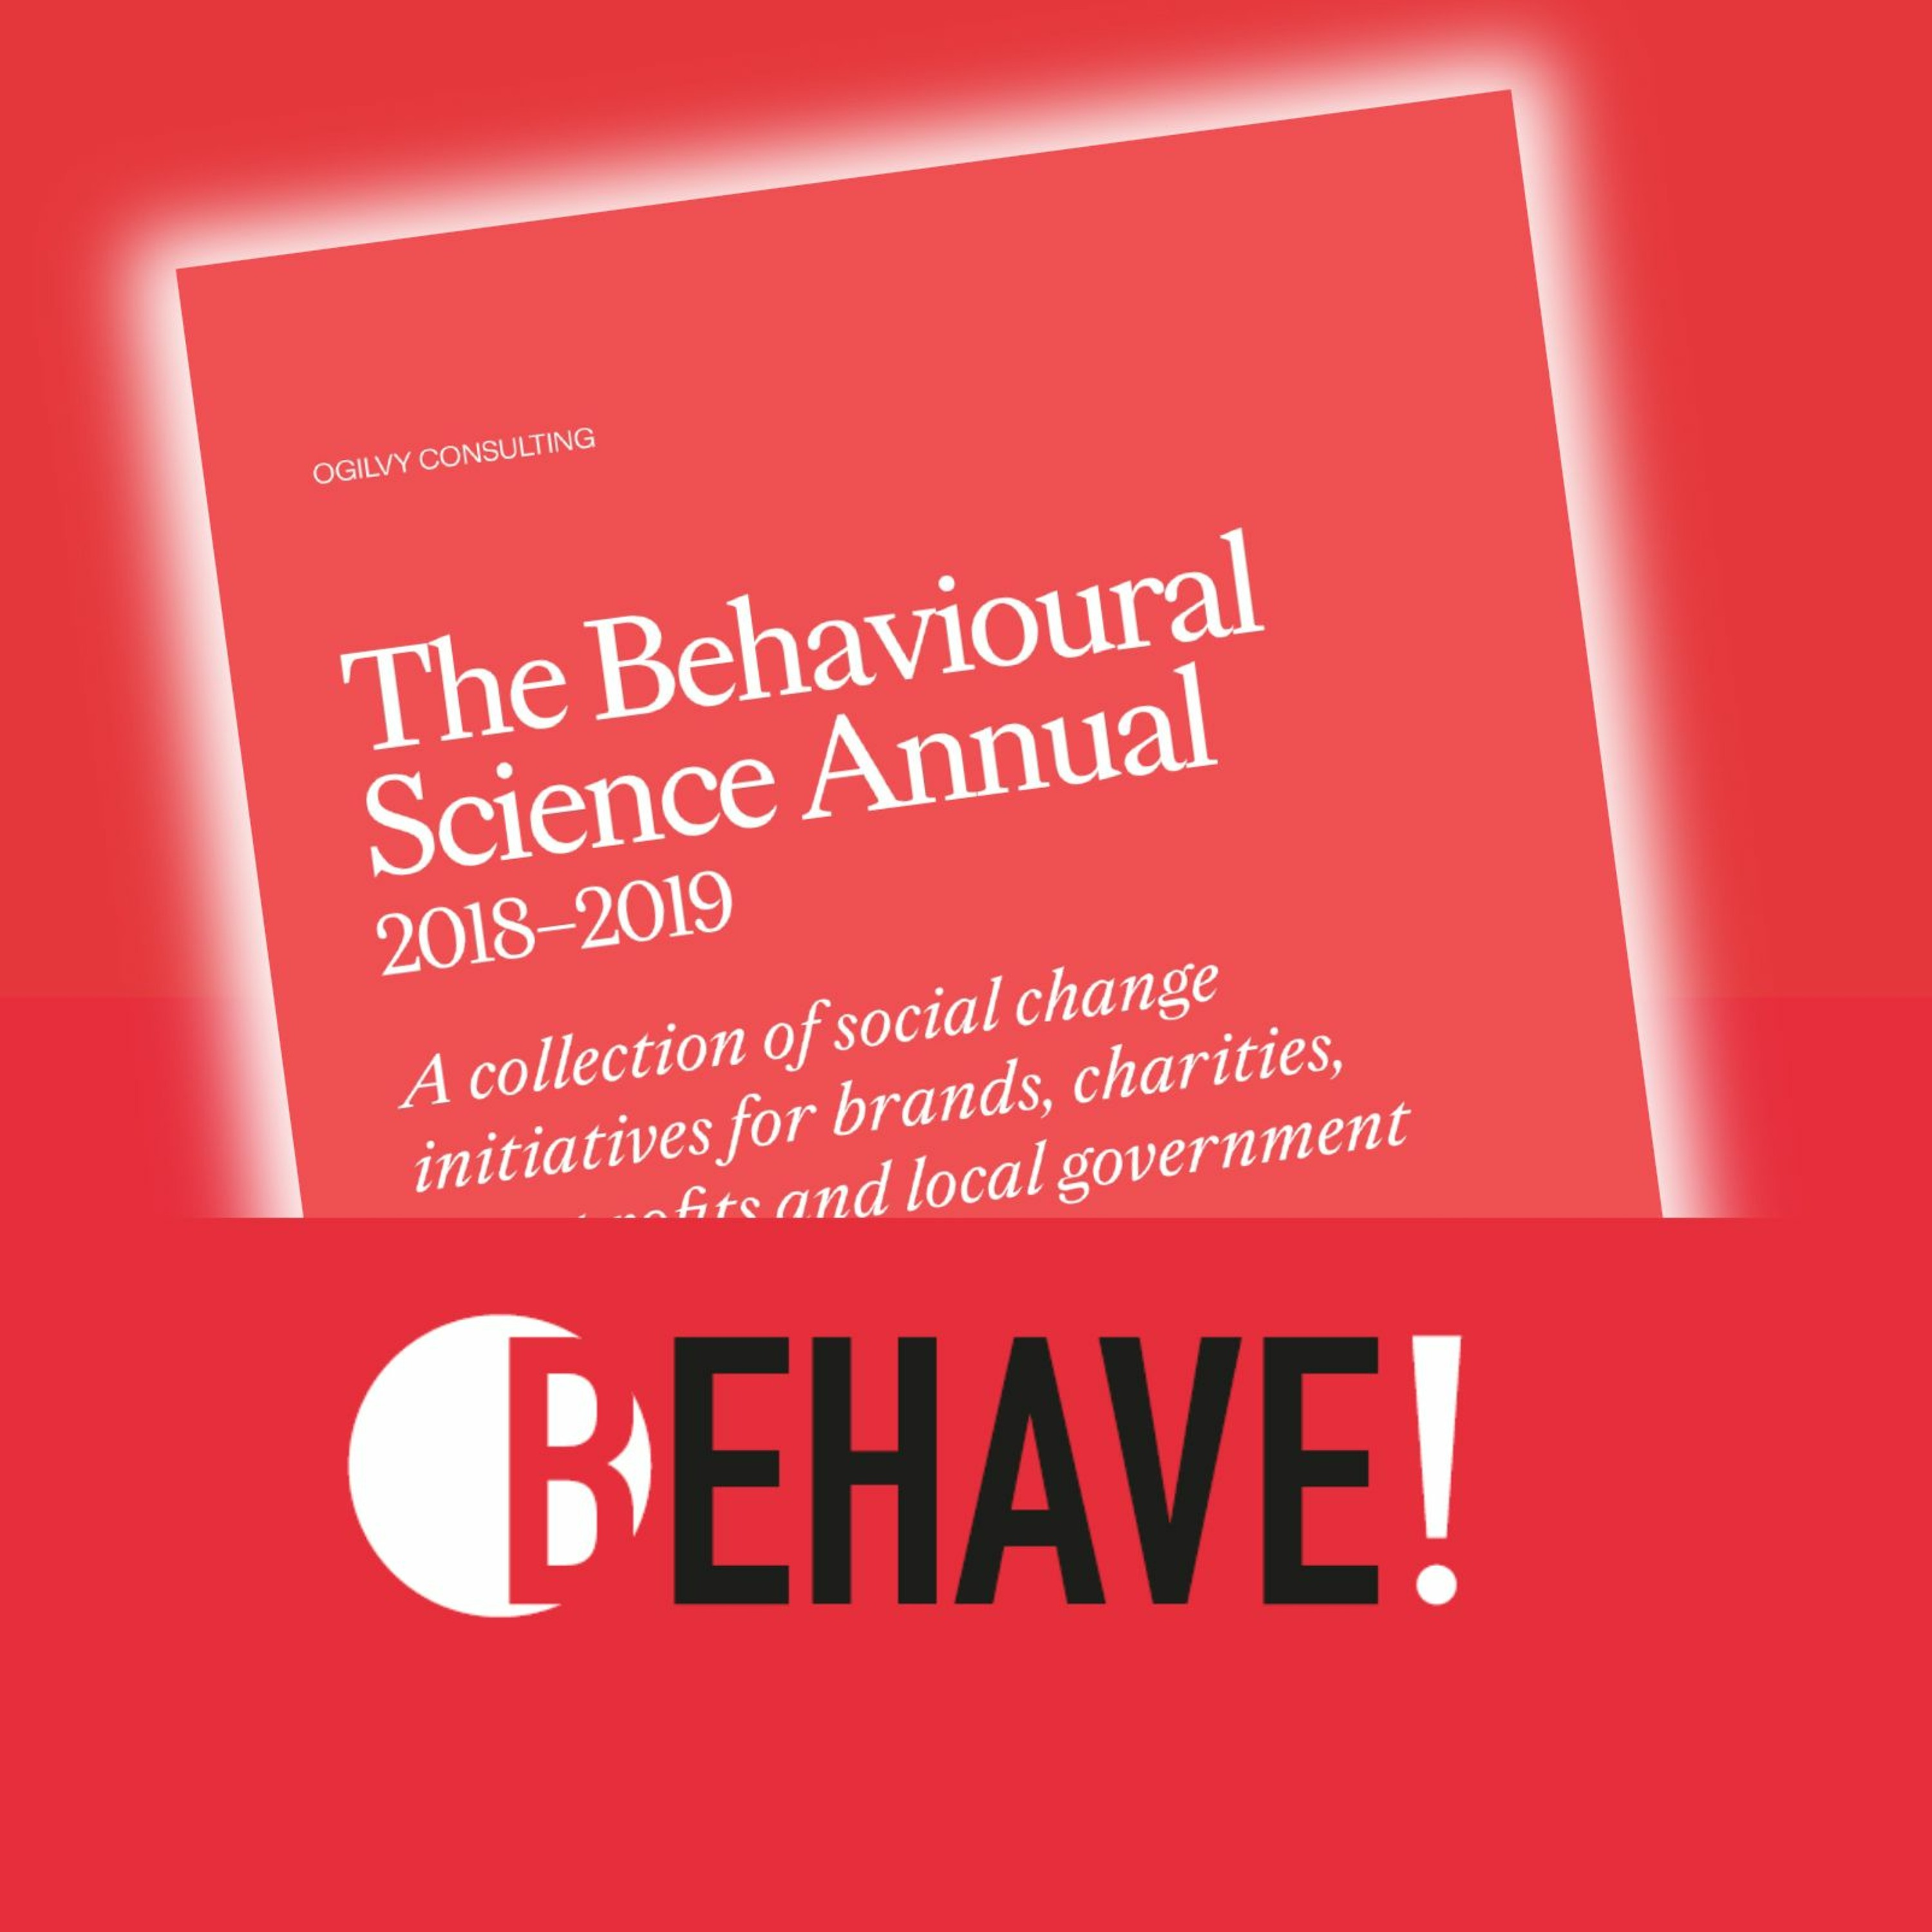 Episode 26 - The Behavioural Science Annual 2019 - Behind the Results